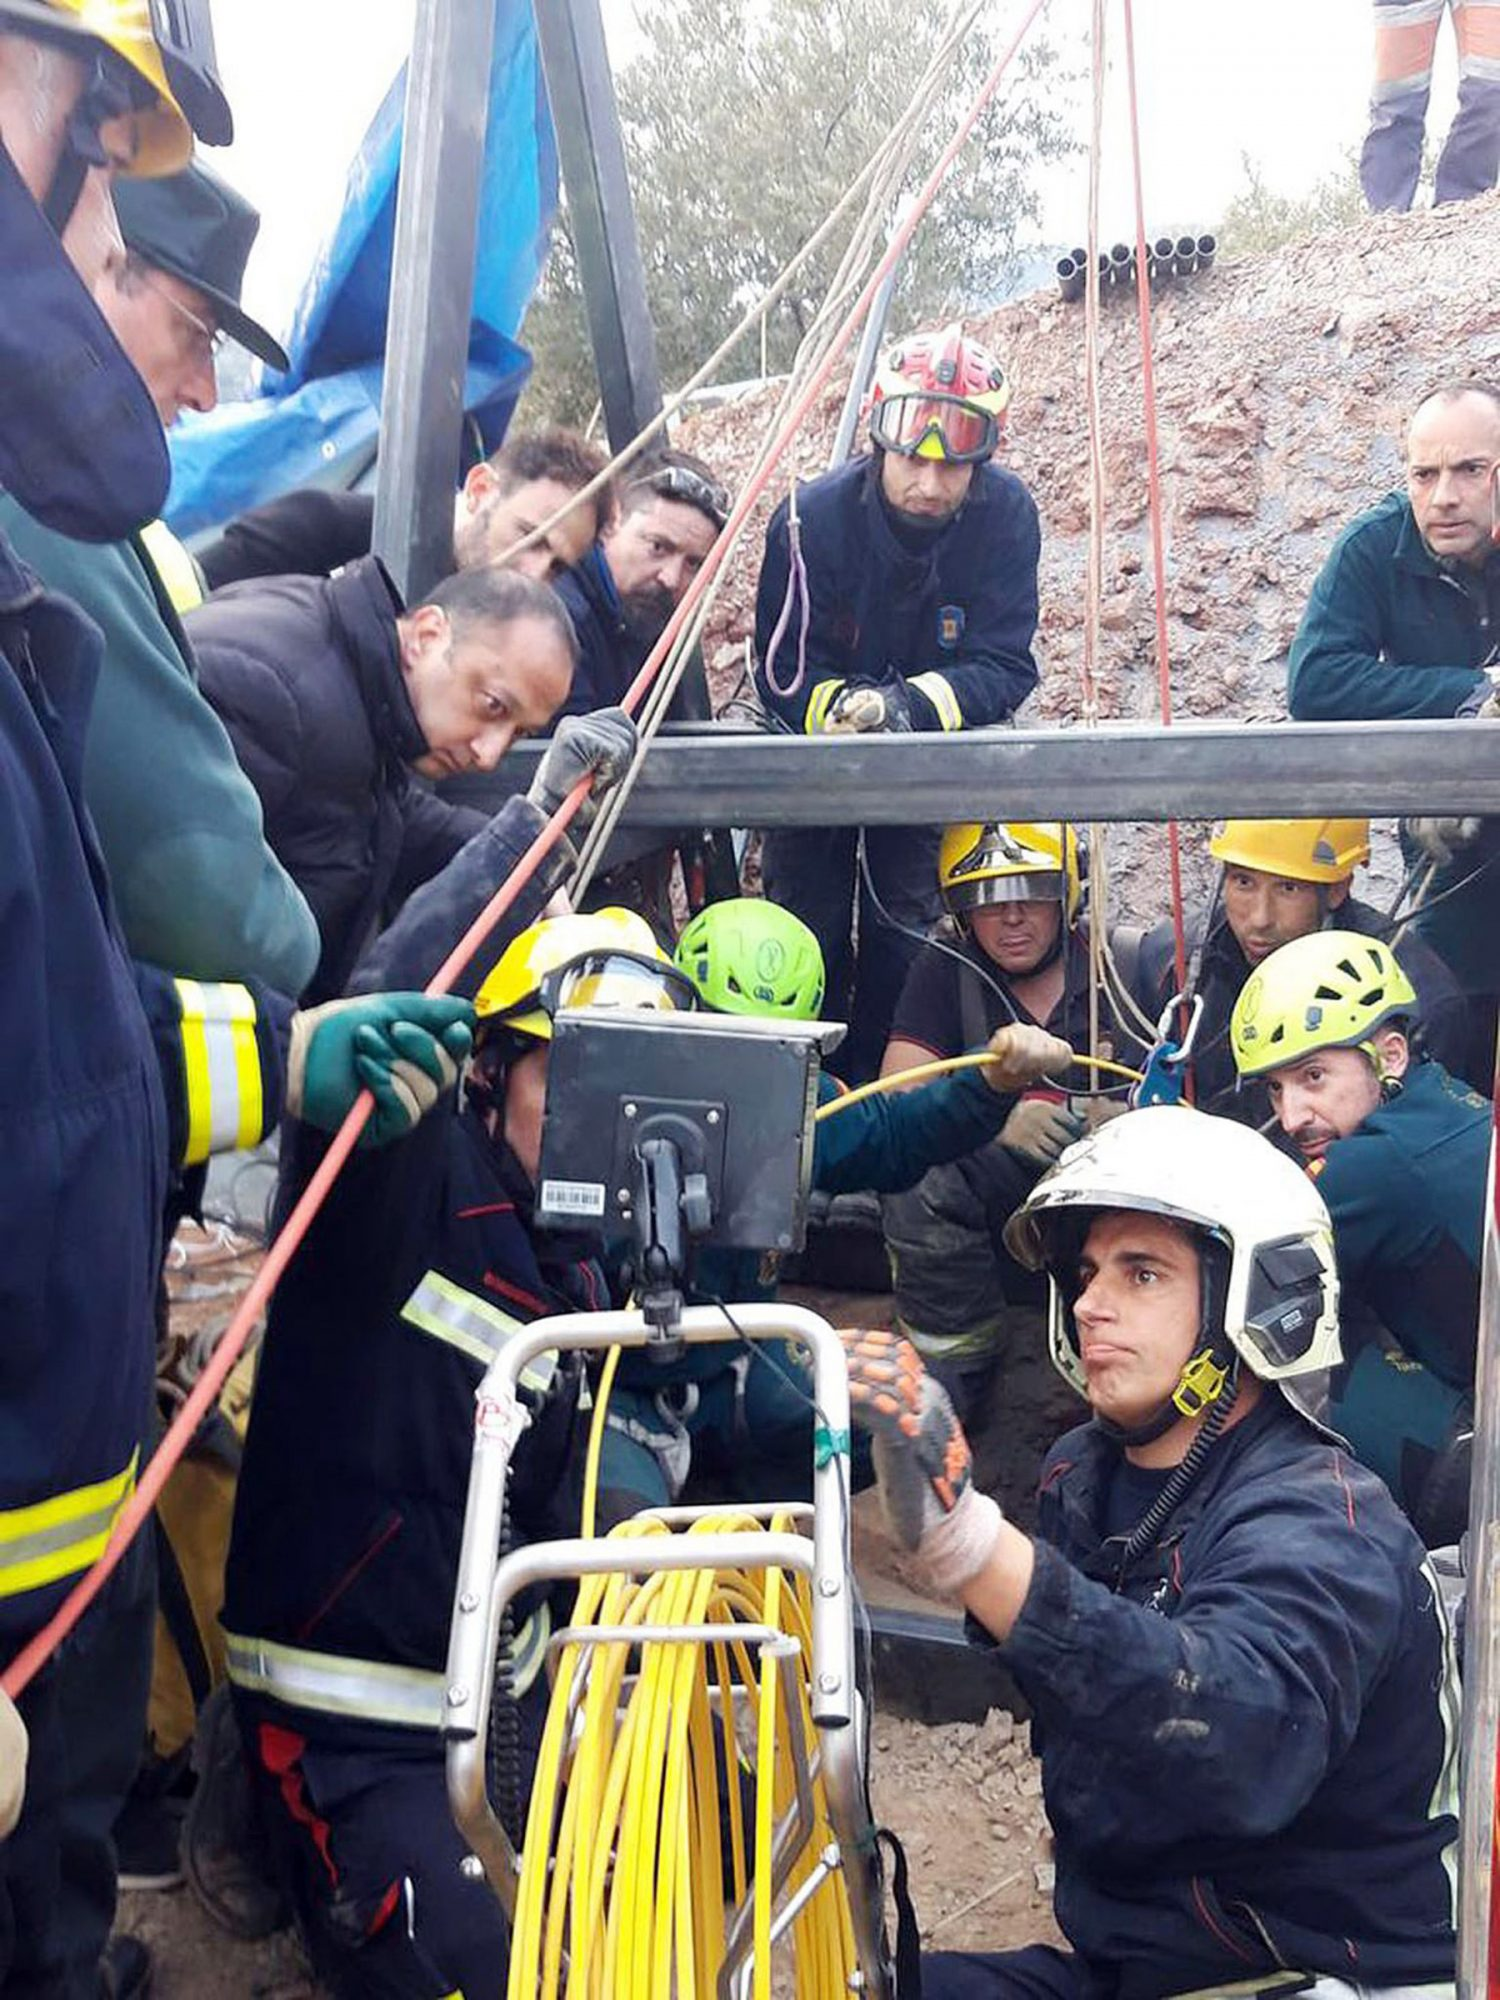 Two-year-old boy falls into a 110 meters well in Malaga, Spain - 16 Jan 2019